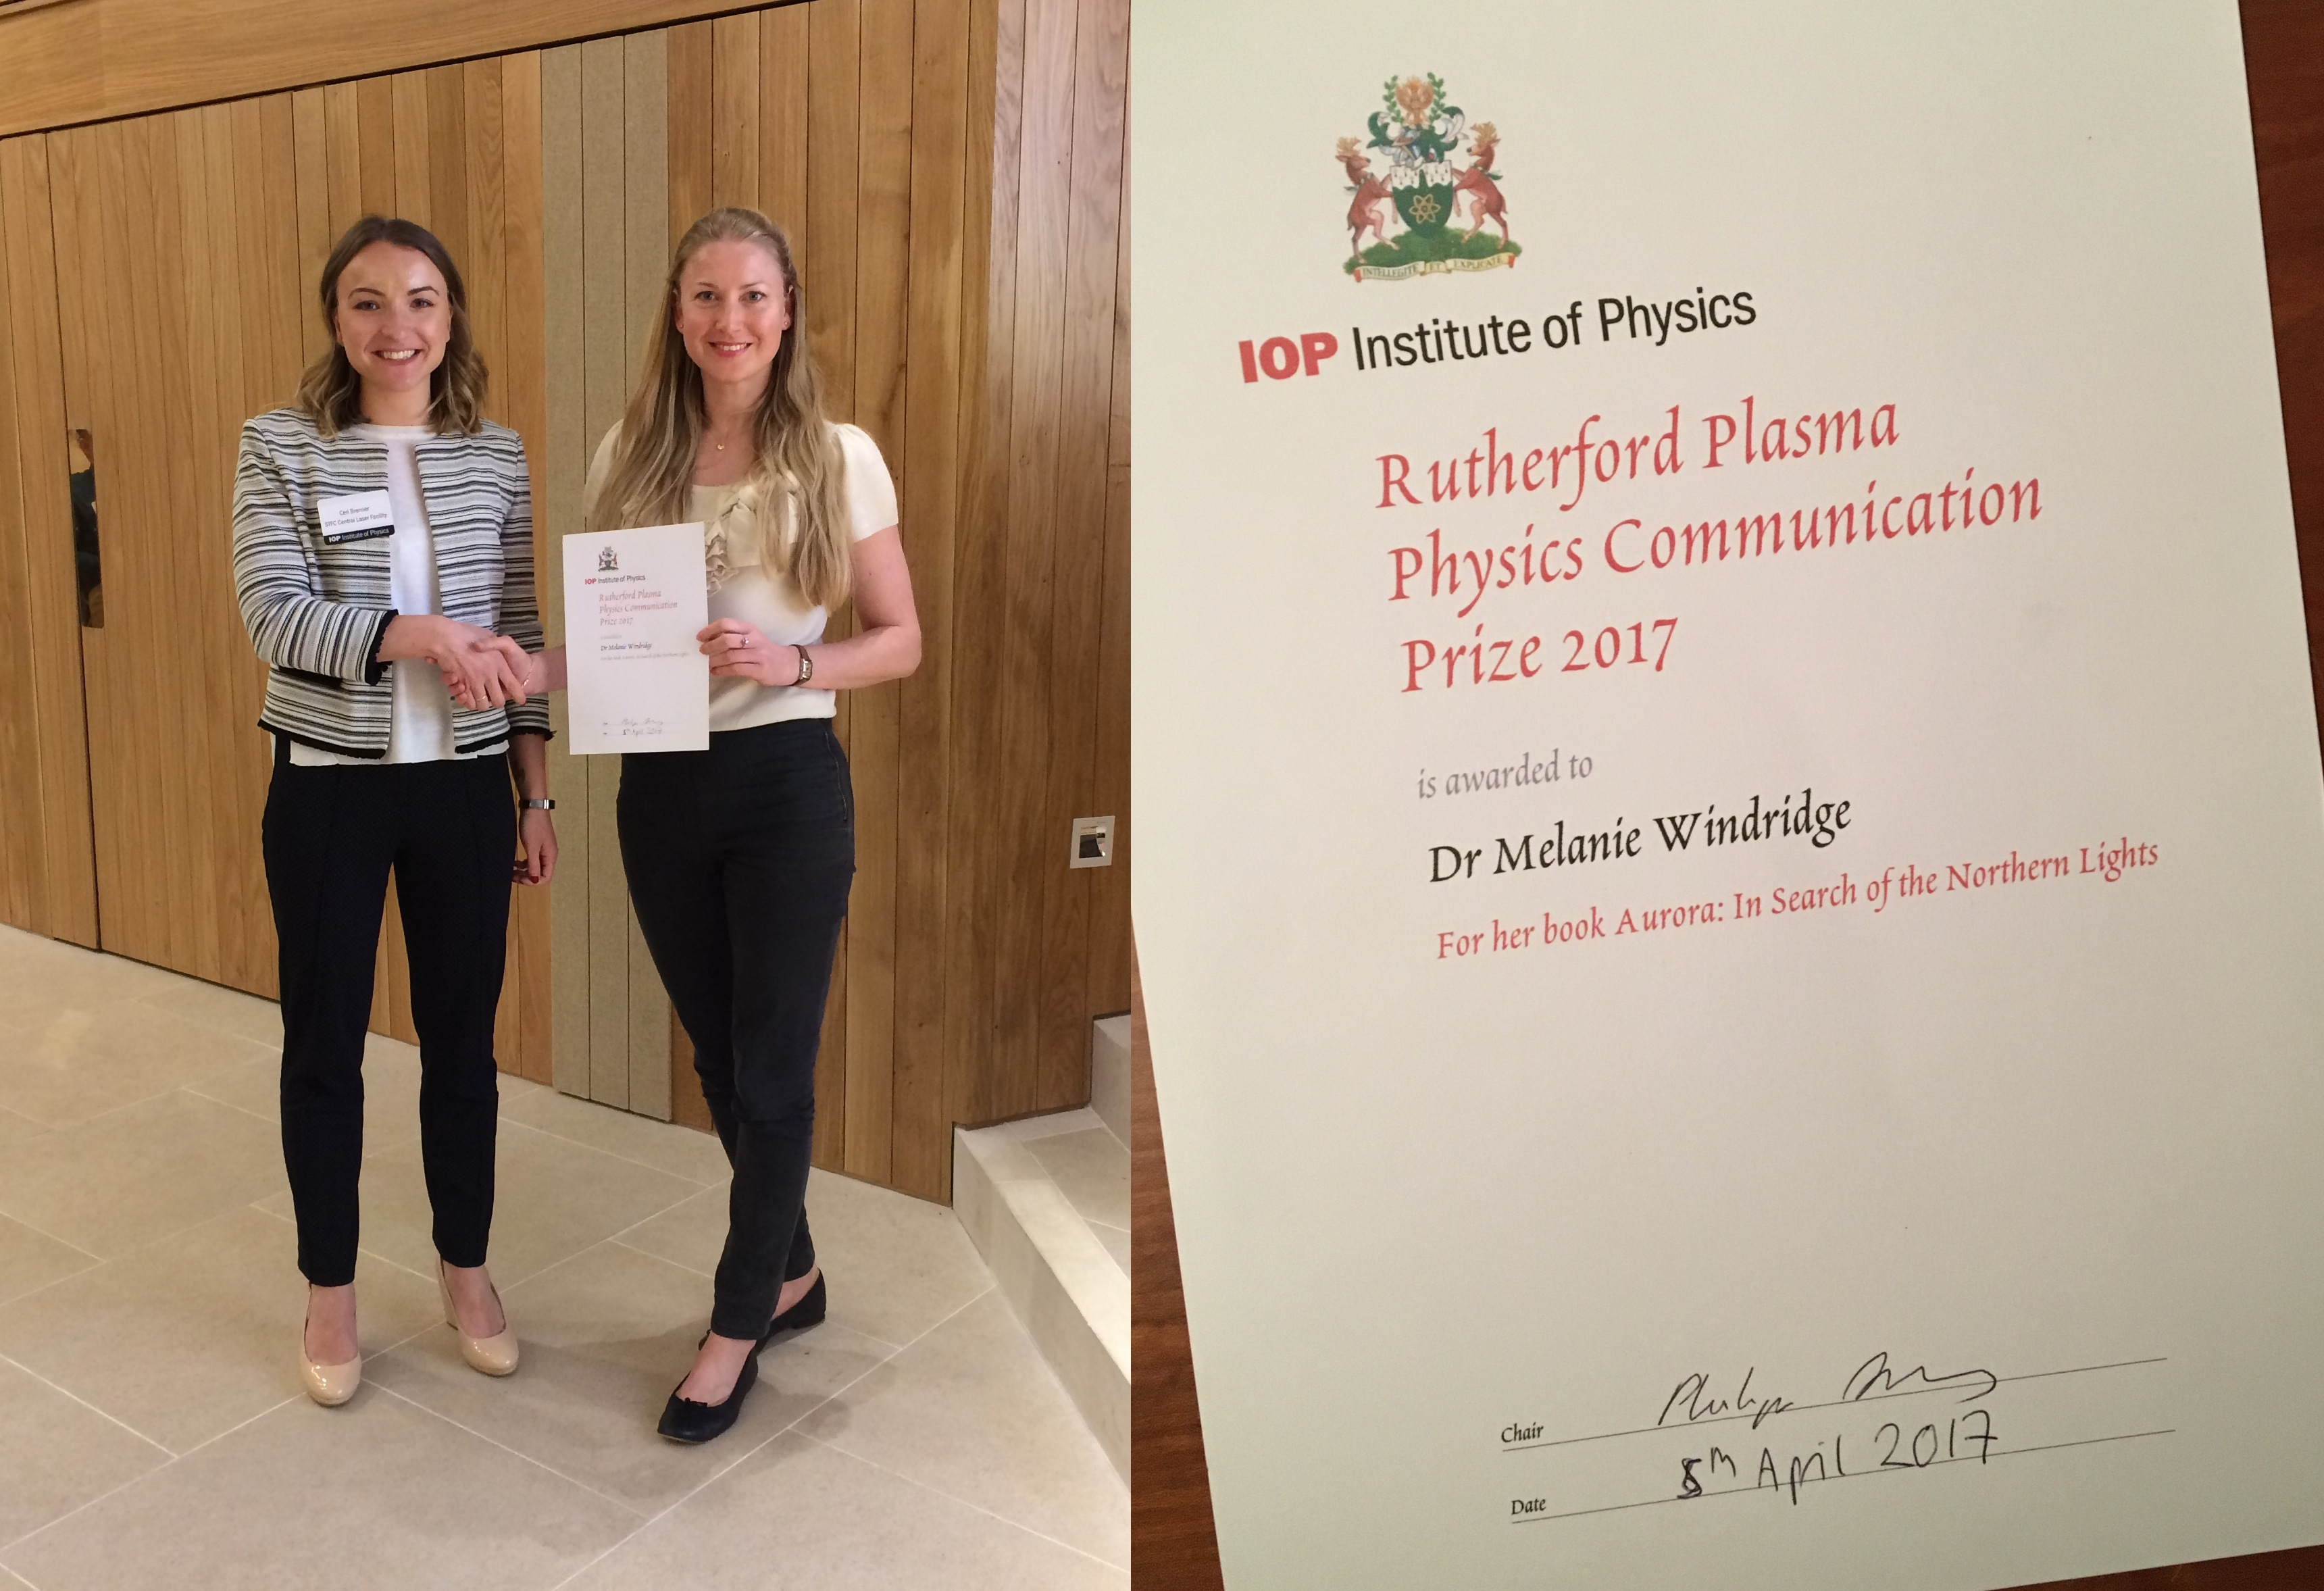 Melanie Windridge is awarded the Rutherford Plasma Physics Communication Prize by Ceri Brenner.